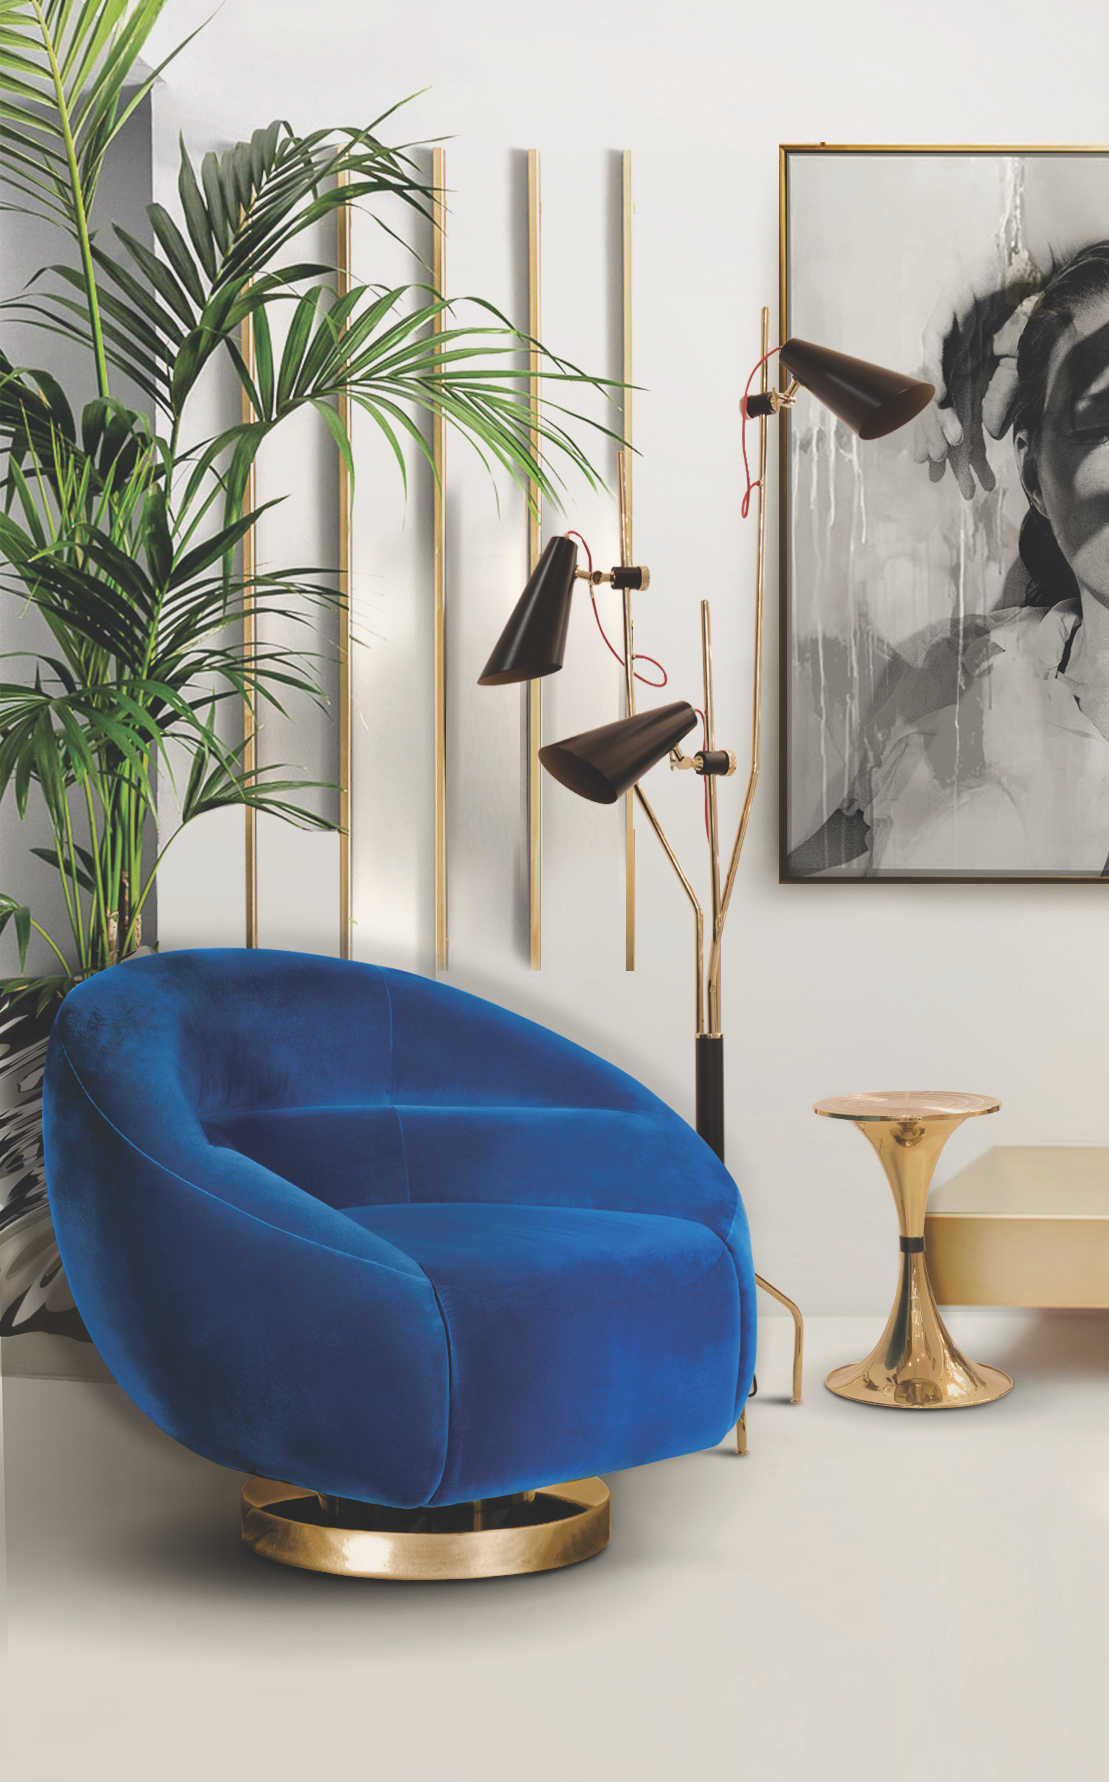 Mood Board- Using Lapis Blue on Your Mid-Century Furniture mid-century furniture Mood Board: Using Lapis Blue on Your Mid-Century Furniture Mood Board Using Lapis Blue on Your Mid Century Furniture 1